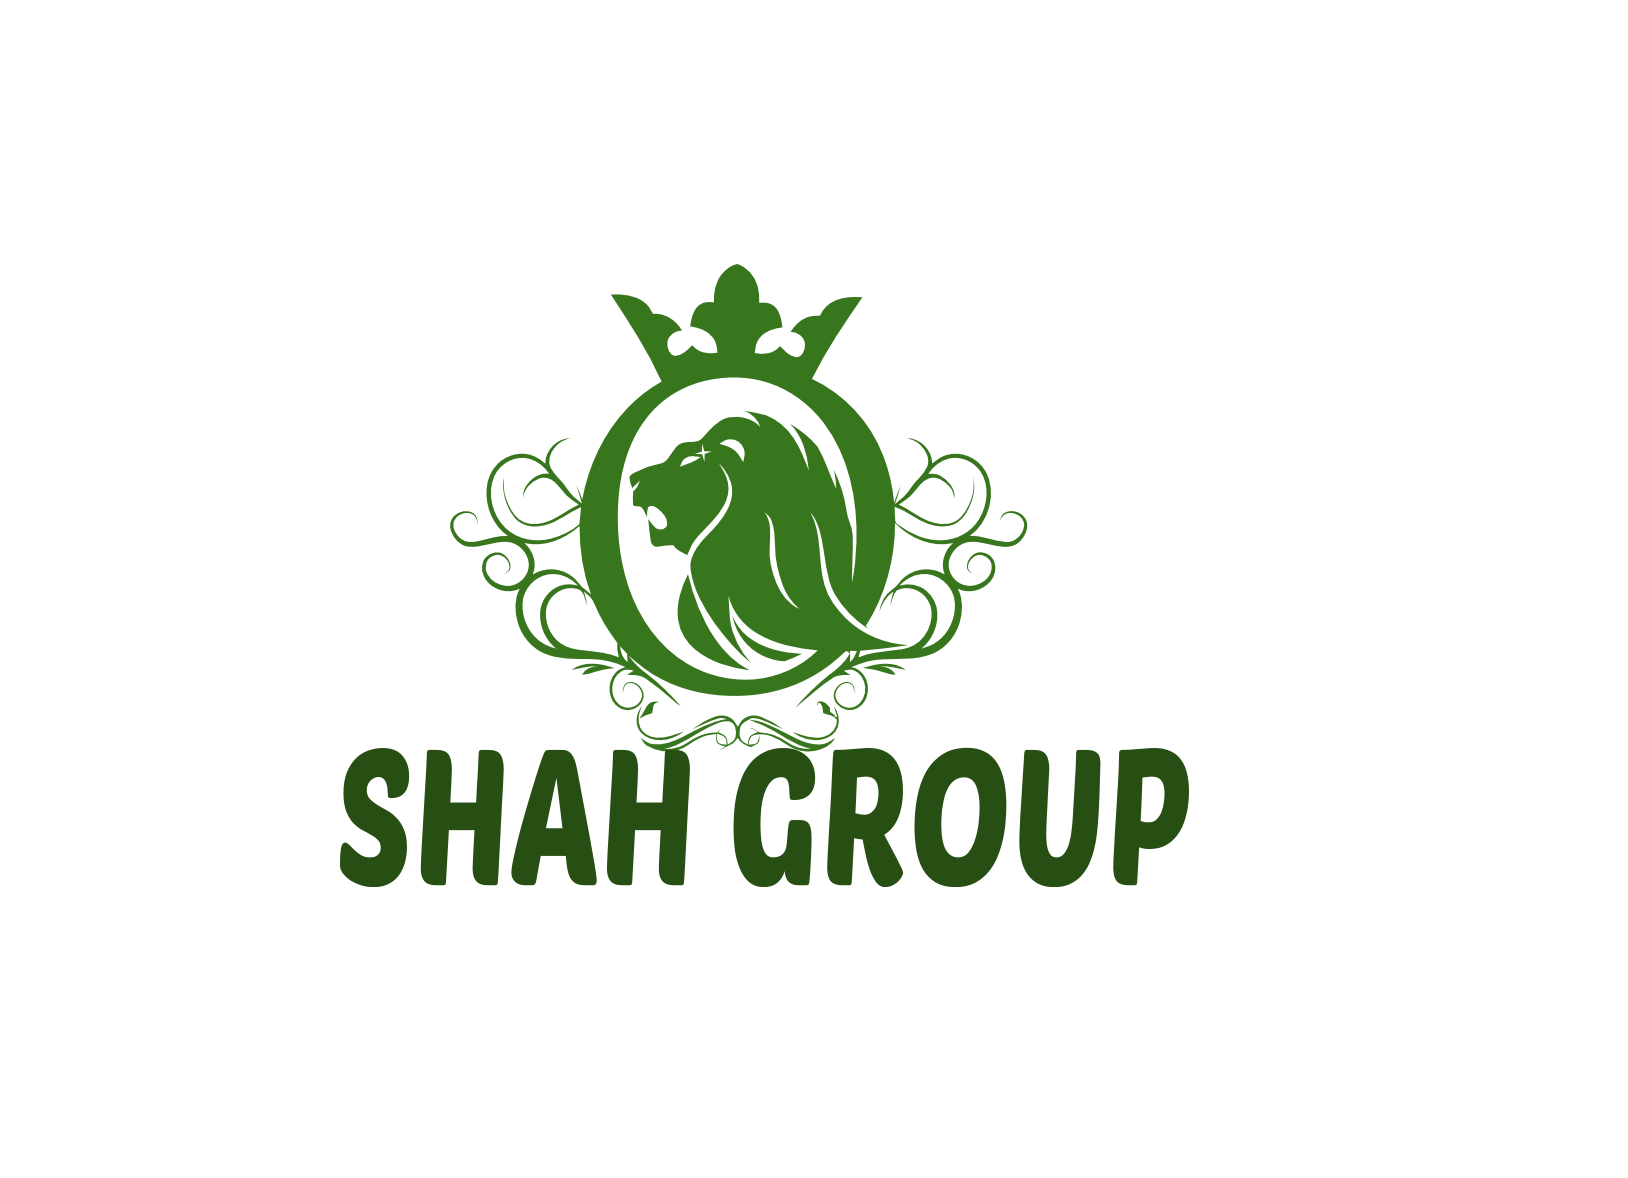 SHAH GROUP